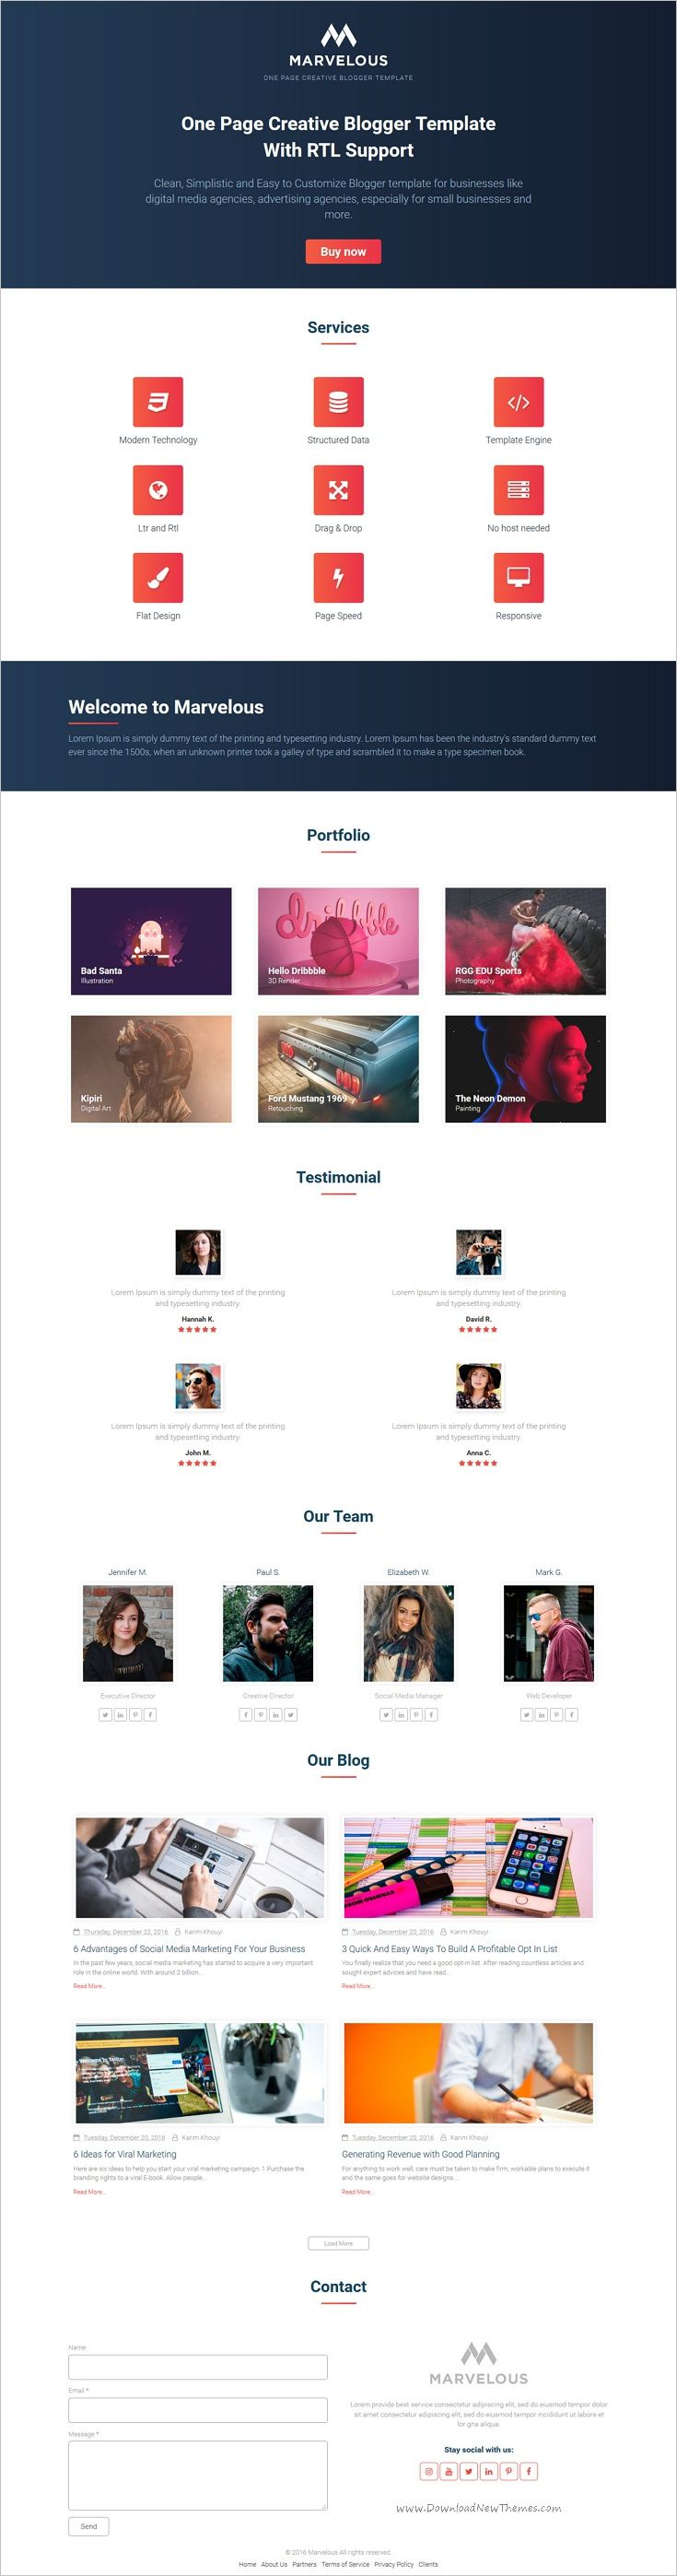 94 best best responsive blogger template collection images on marvelous one page creative blogger template with rtl support wajeb Choice Image